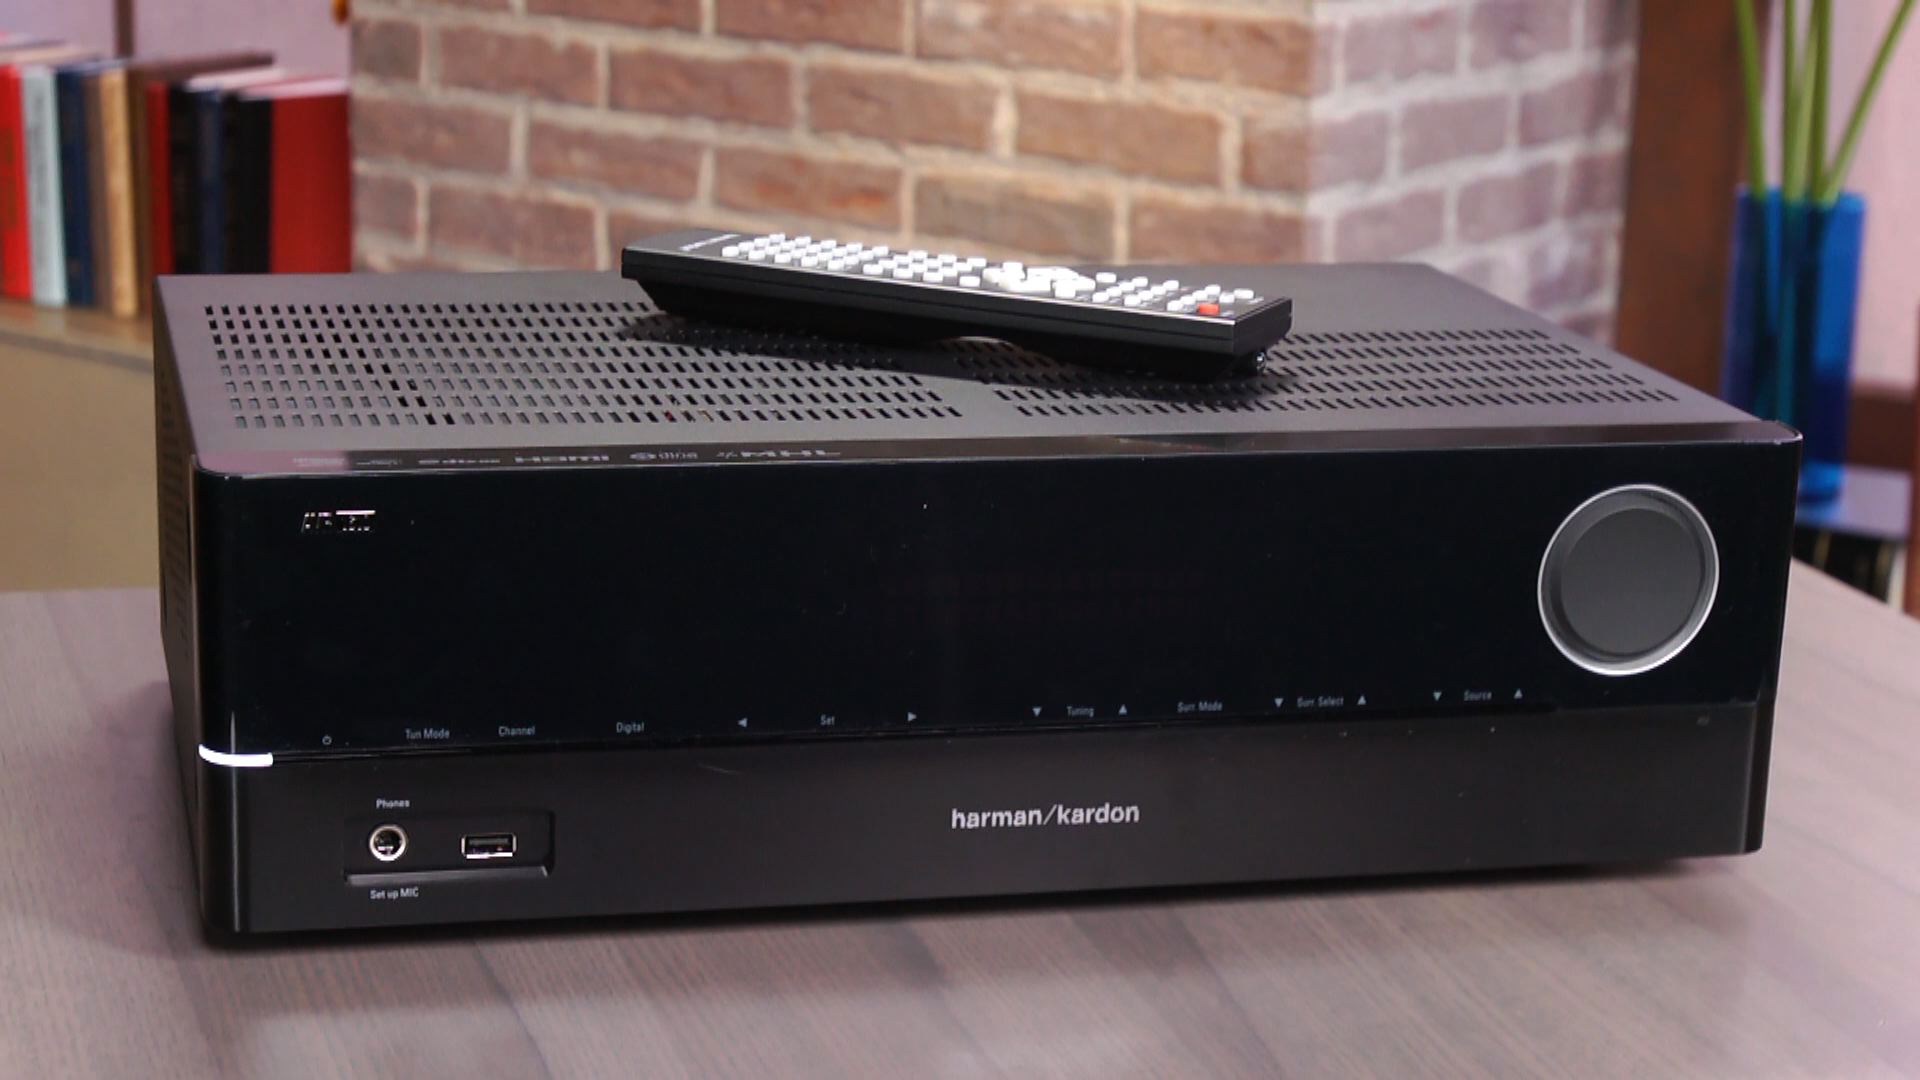 Video: Well-priced but underachieving AV receiver